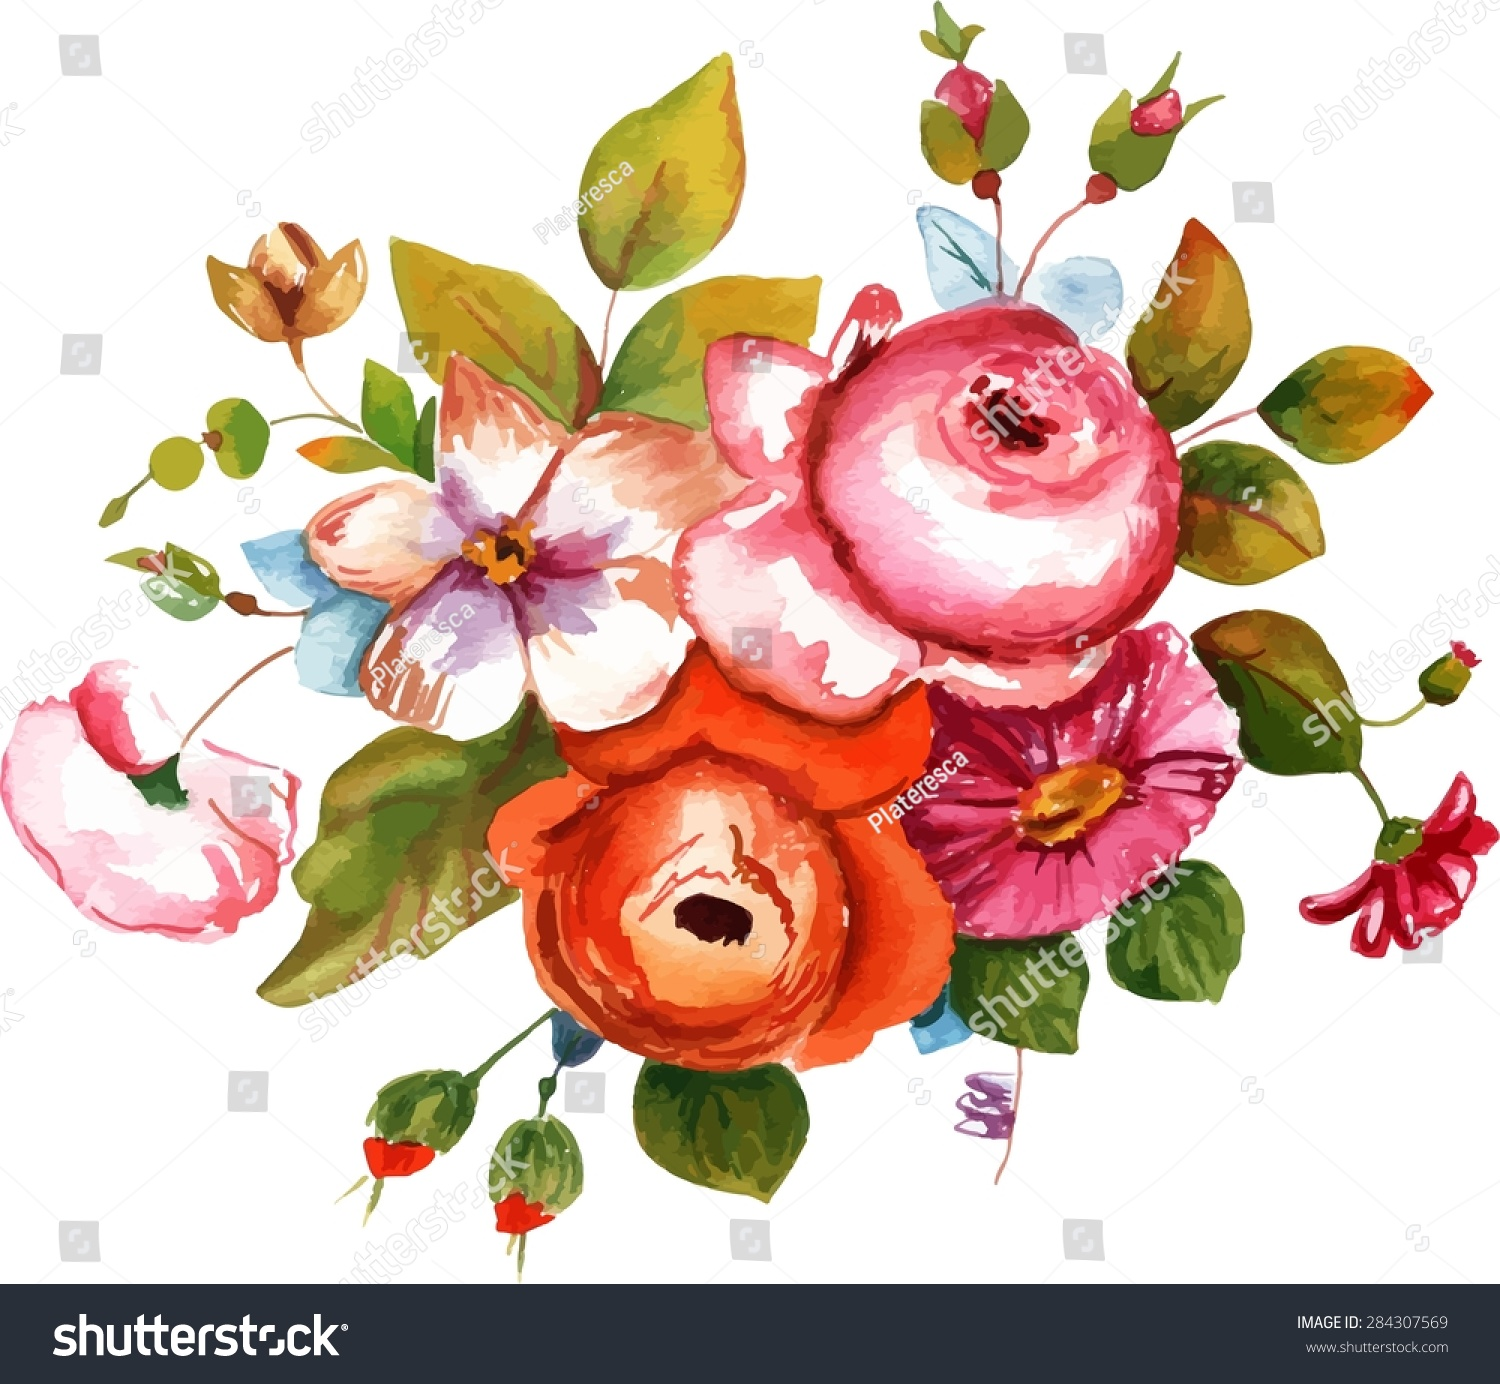 Vintage Style Watercolour Drawing Bouquet Flowers Stock Photo (Photo ...